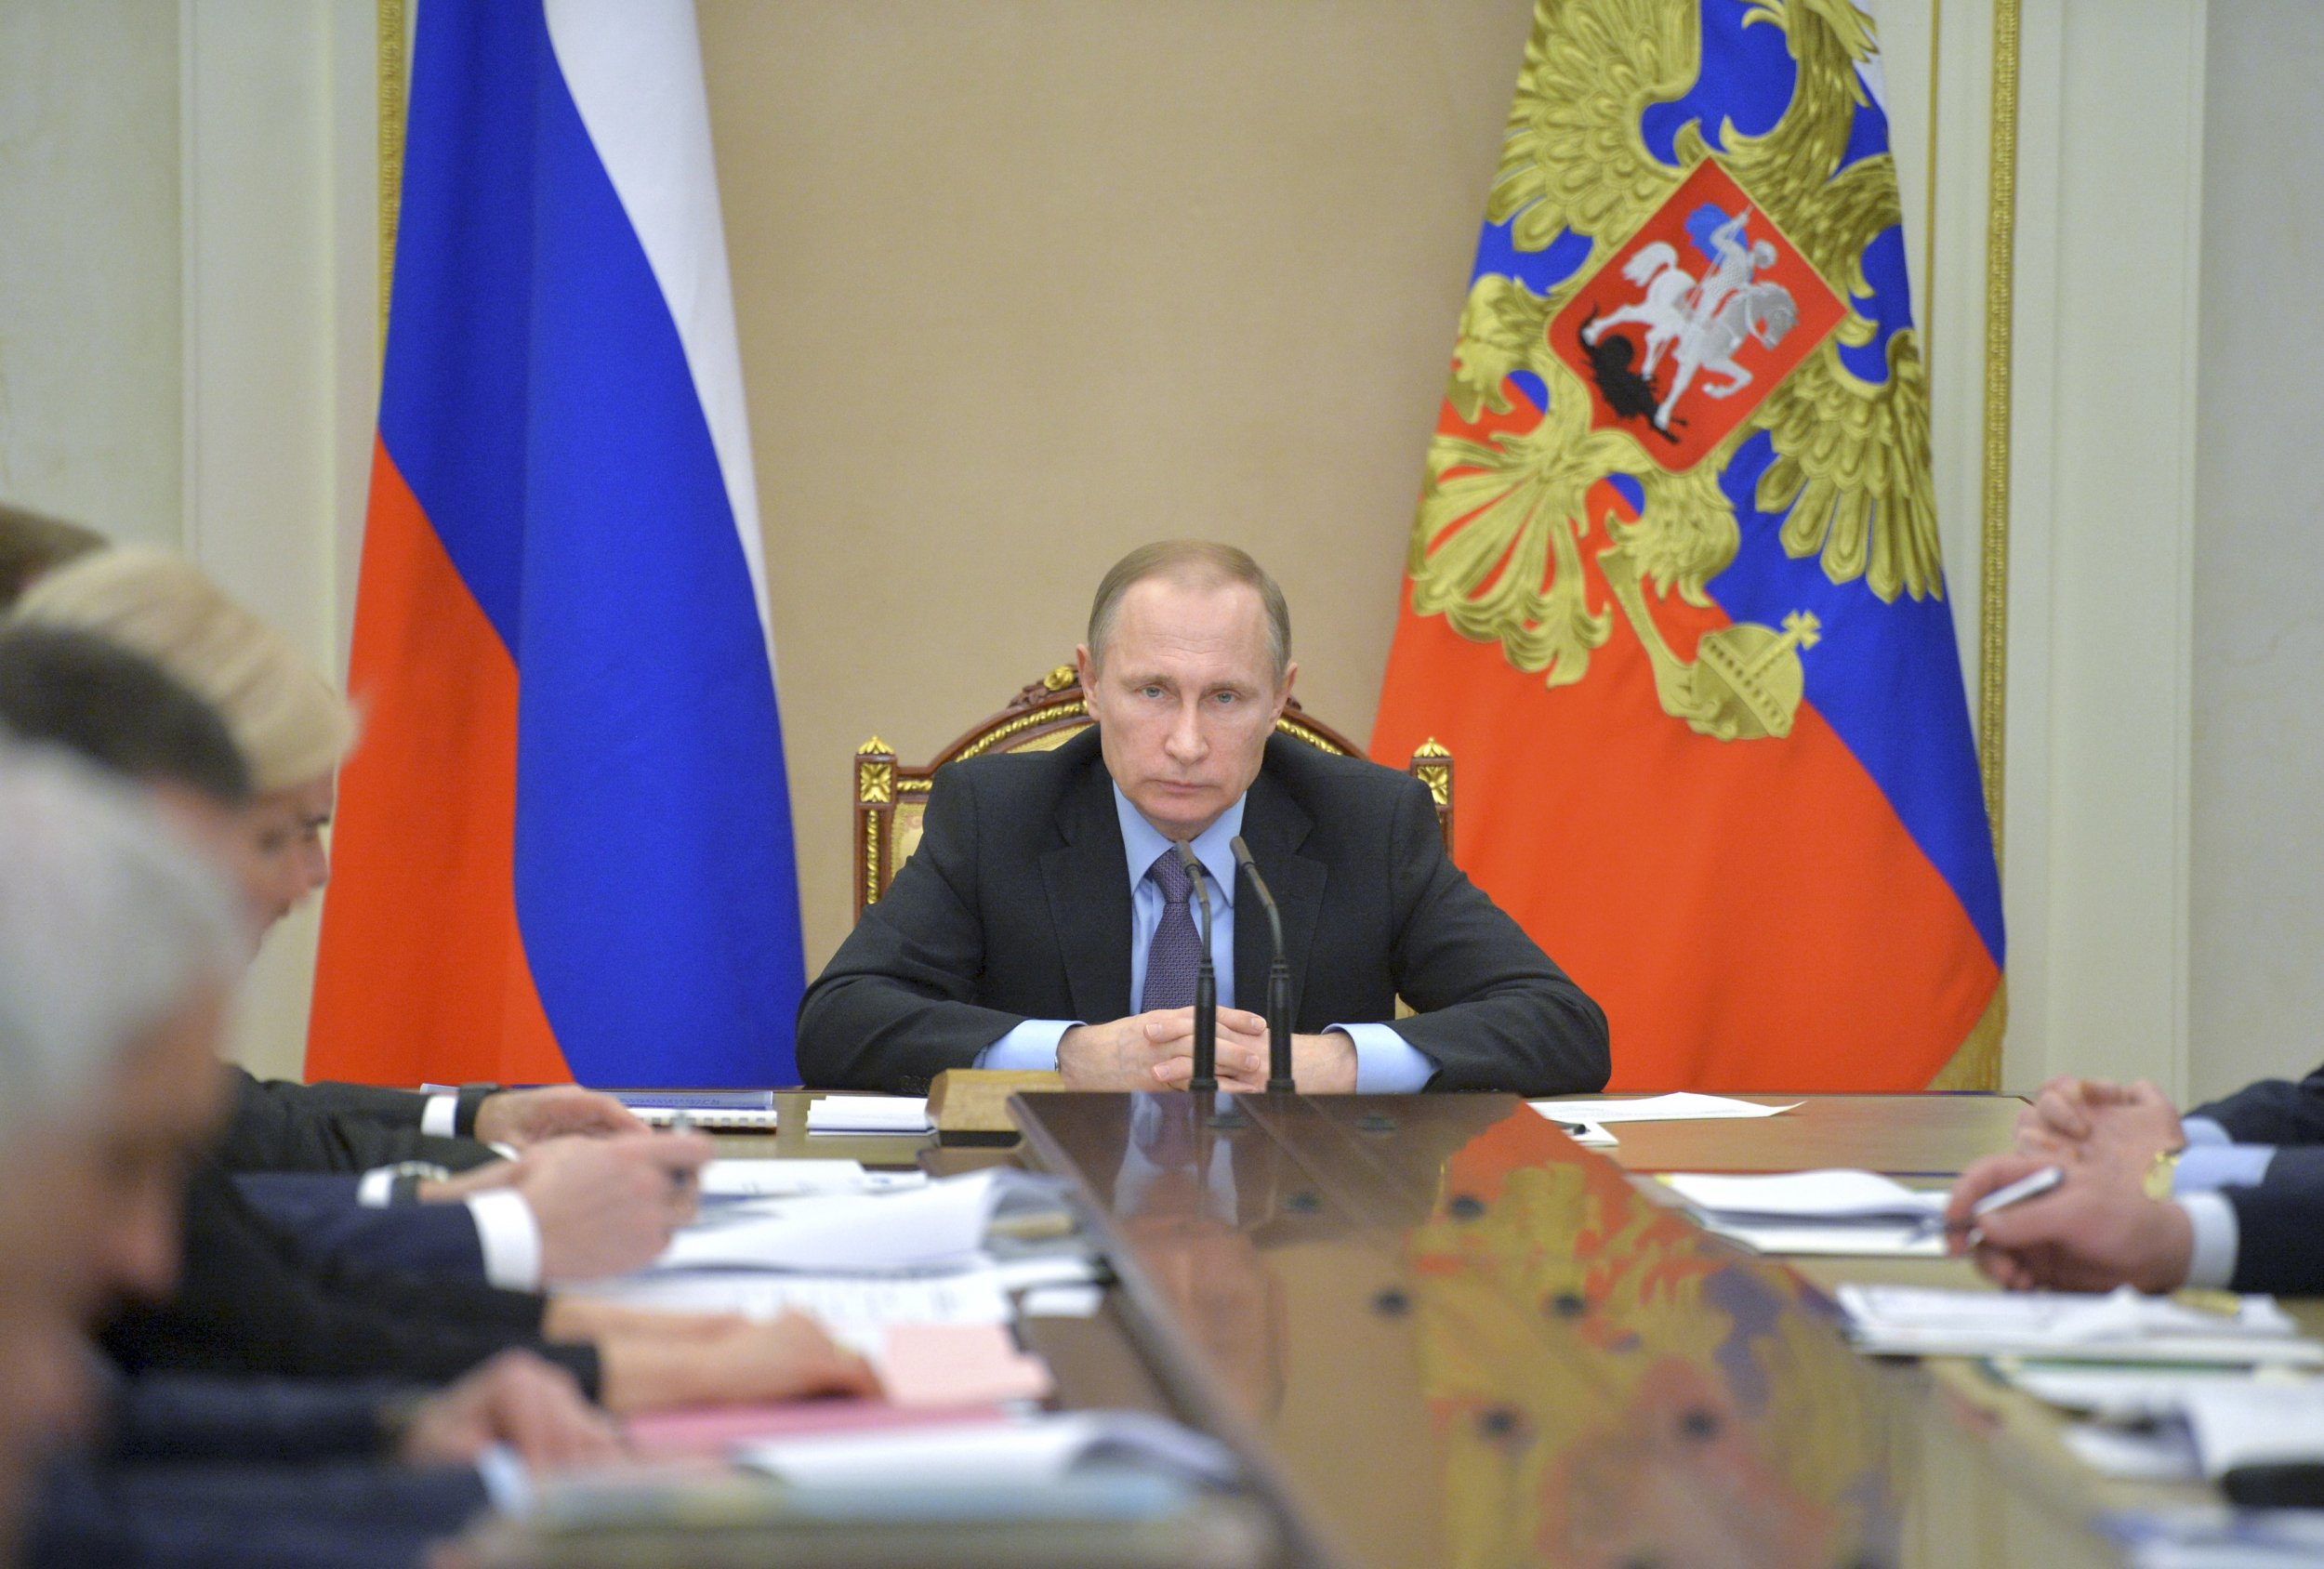 Putin chairs Kremlin meeting